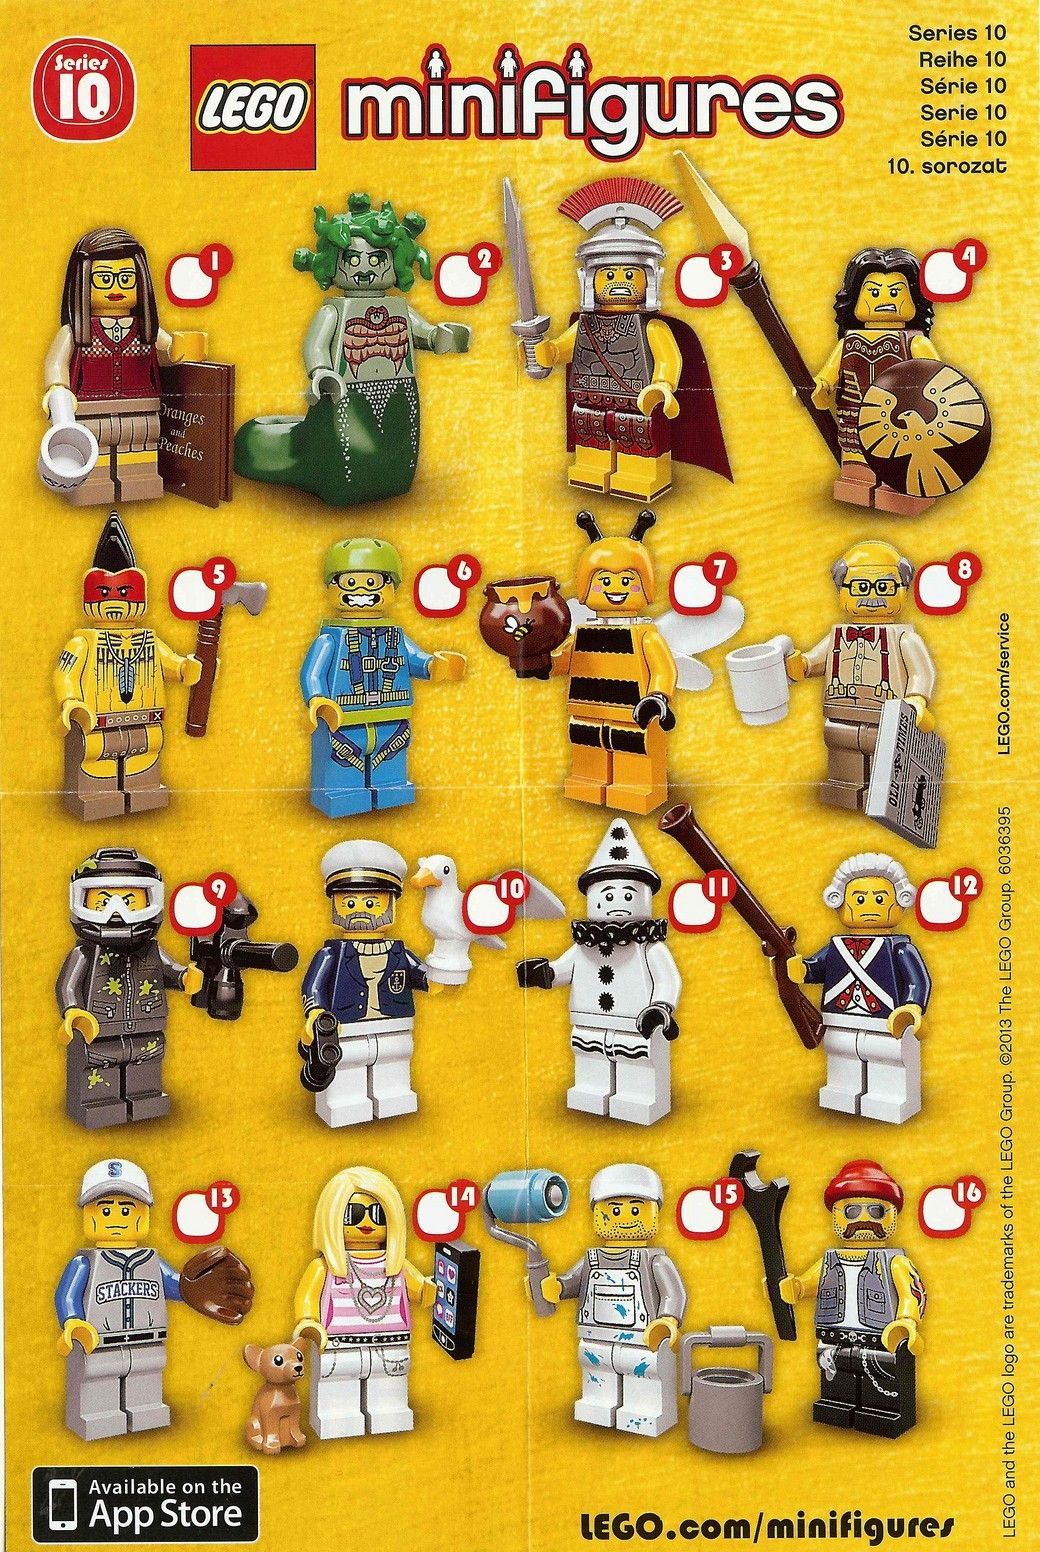 Lego Minifigures Series 10 Gold Packaging And Inserts Revealed Lego Minifigures Lego Figurine Mini Figures